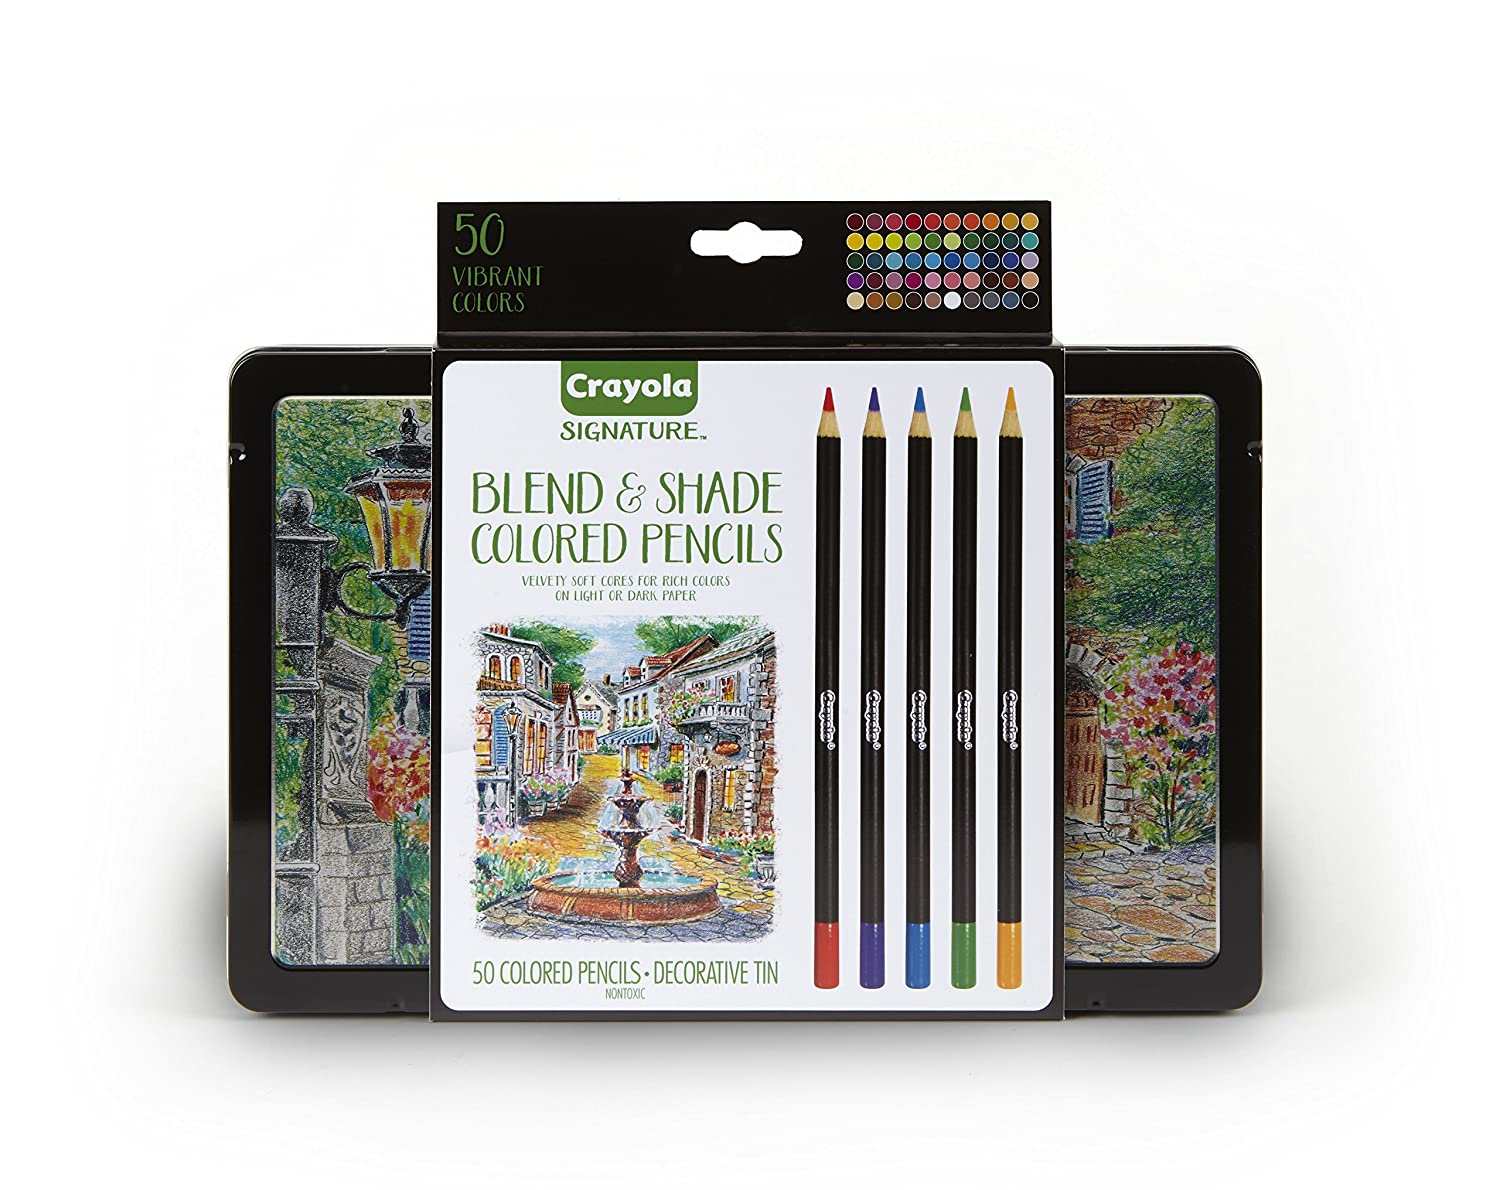 Crayola Blend /& Shade Colored Pencils in Decorative Tin Mothers Day Gifts for Mom 50 Count